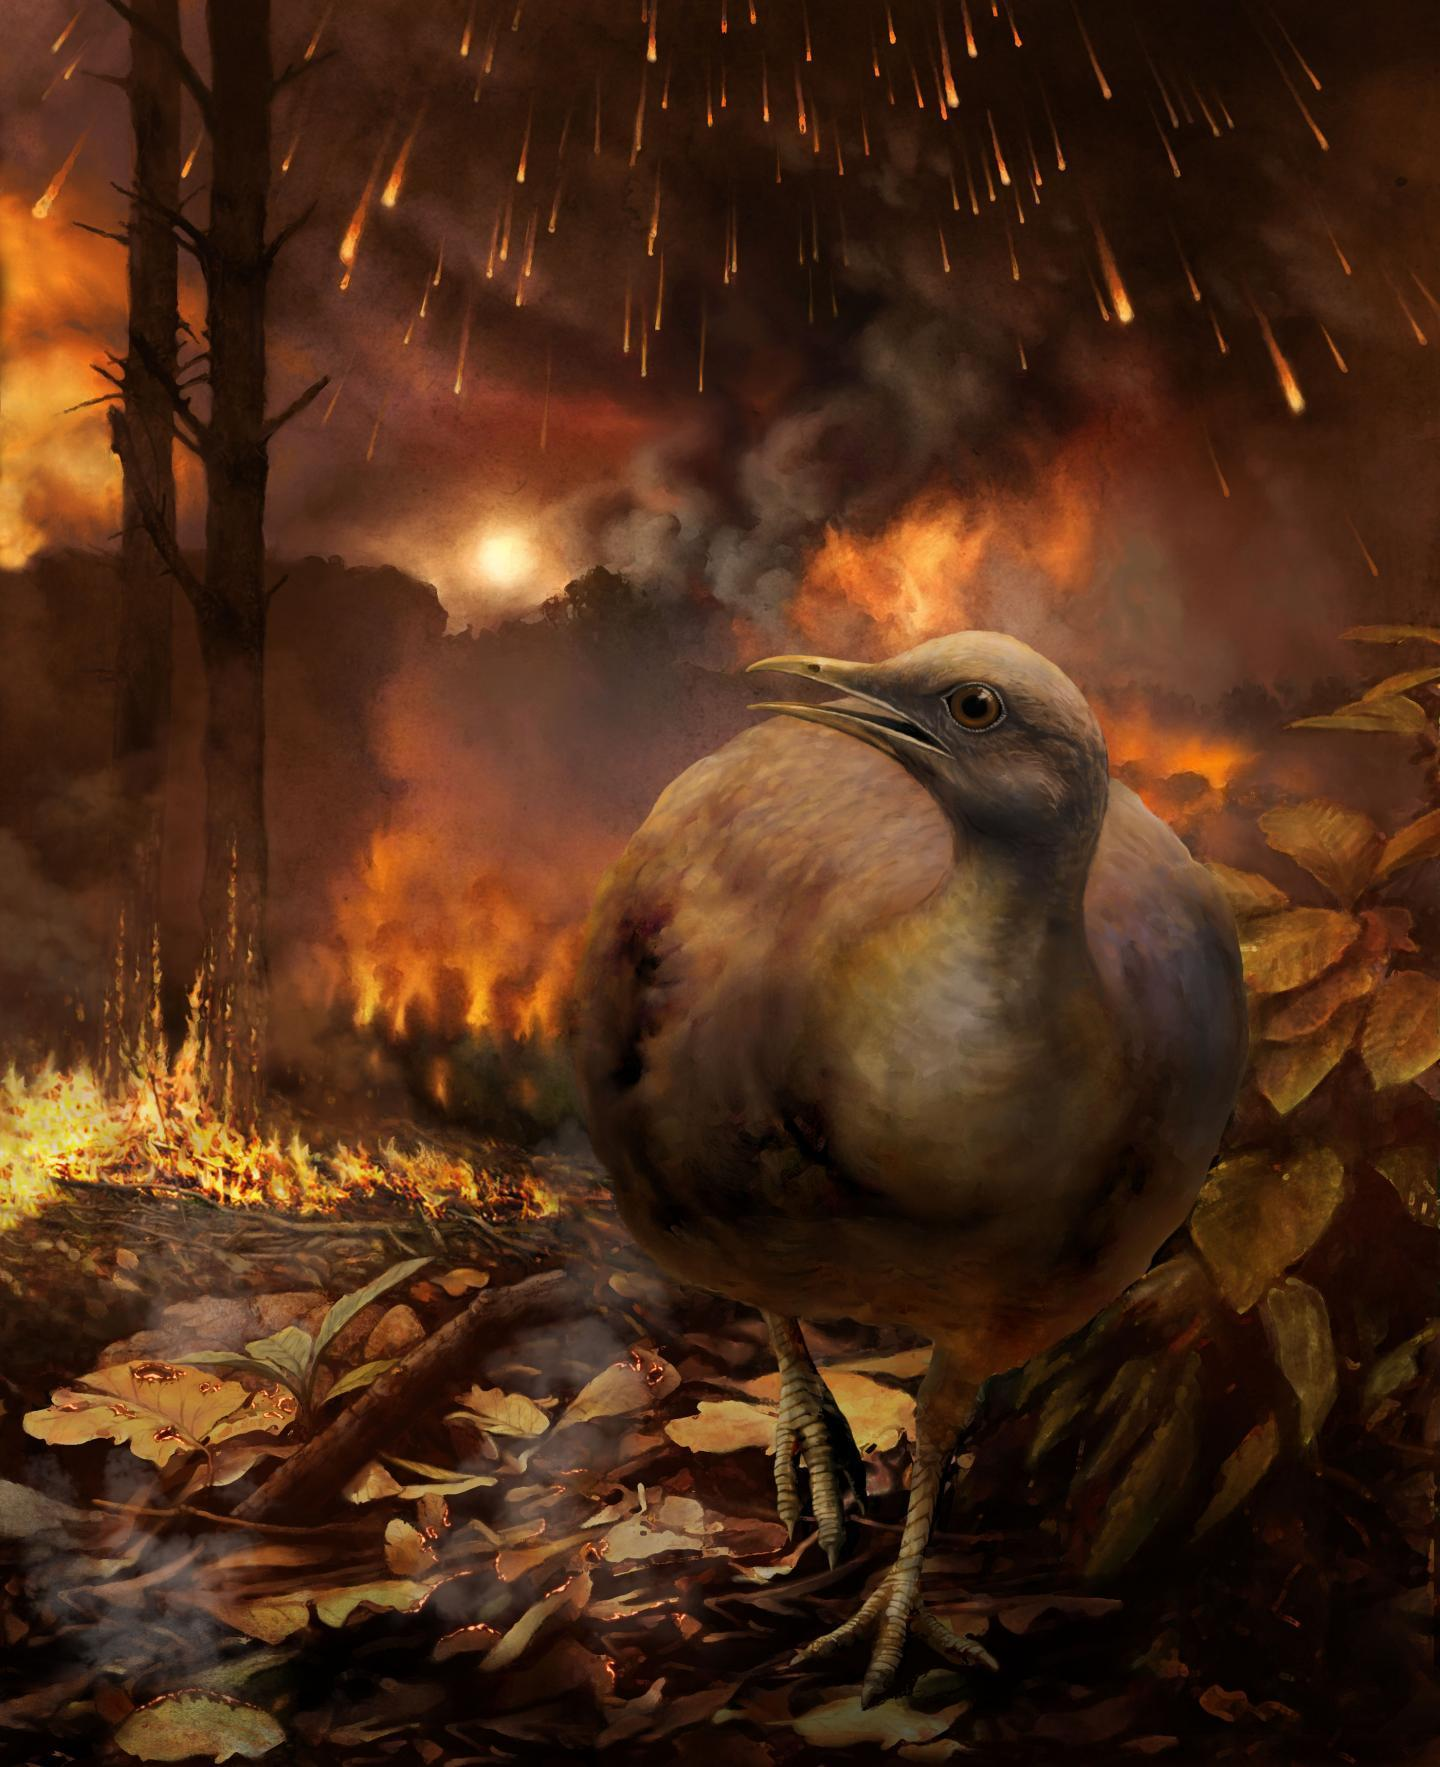 Bird after asteroid